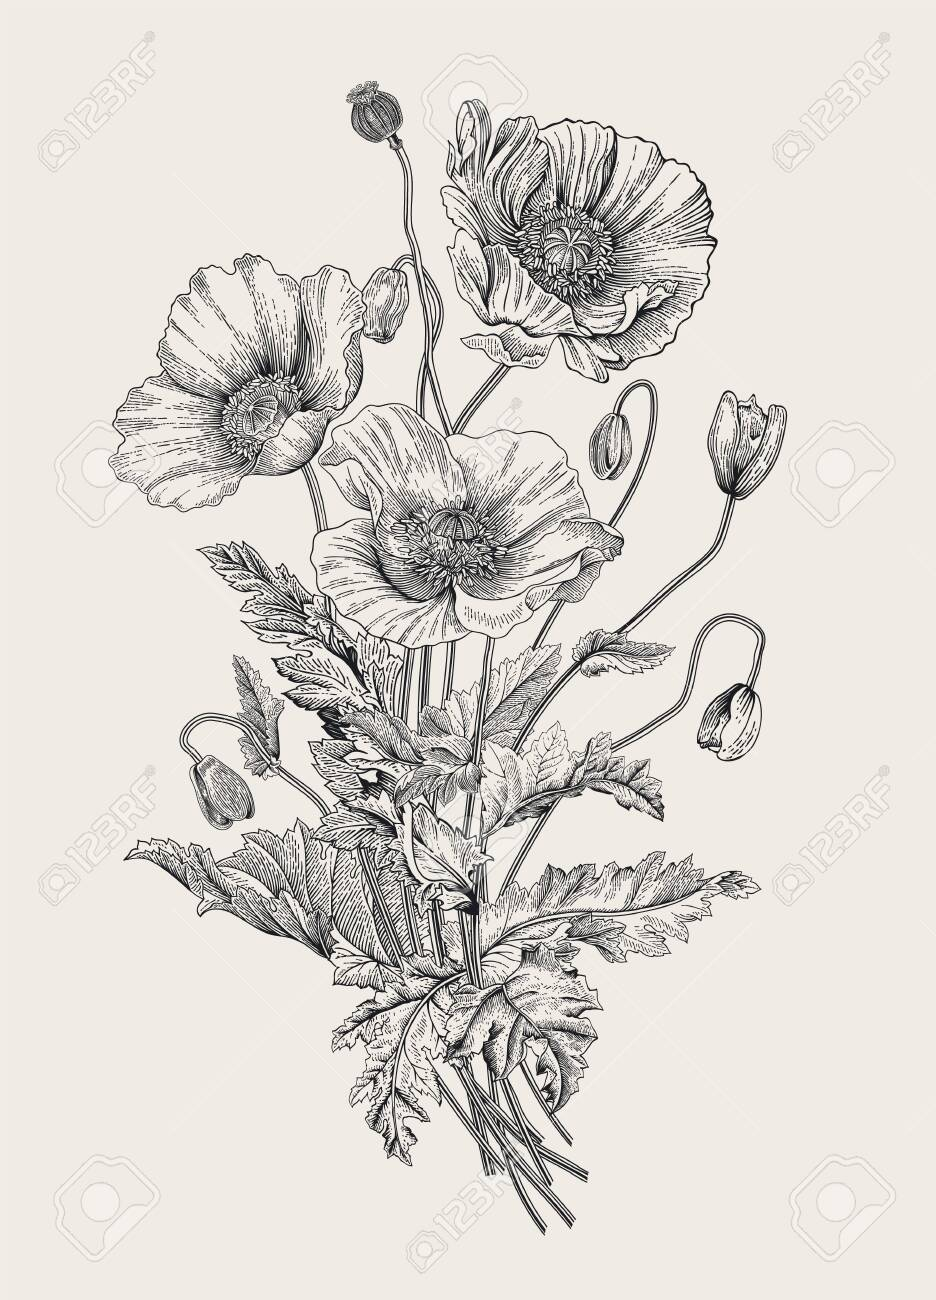 Vintage illustration. Bouquet. Poppies. Black and white - 133949846